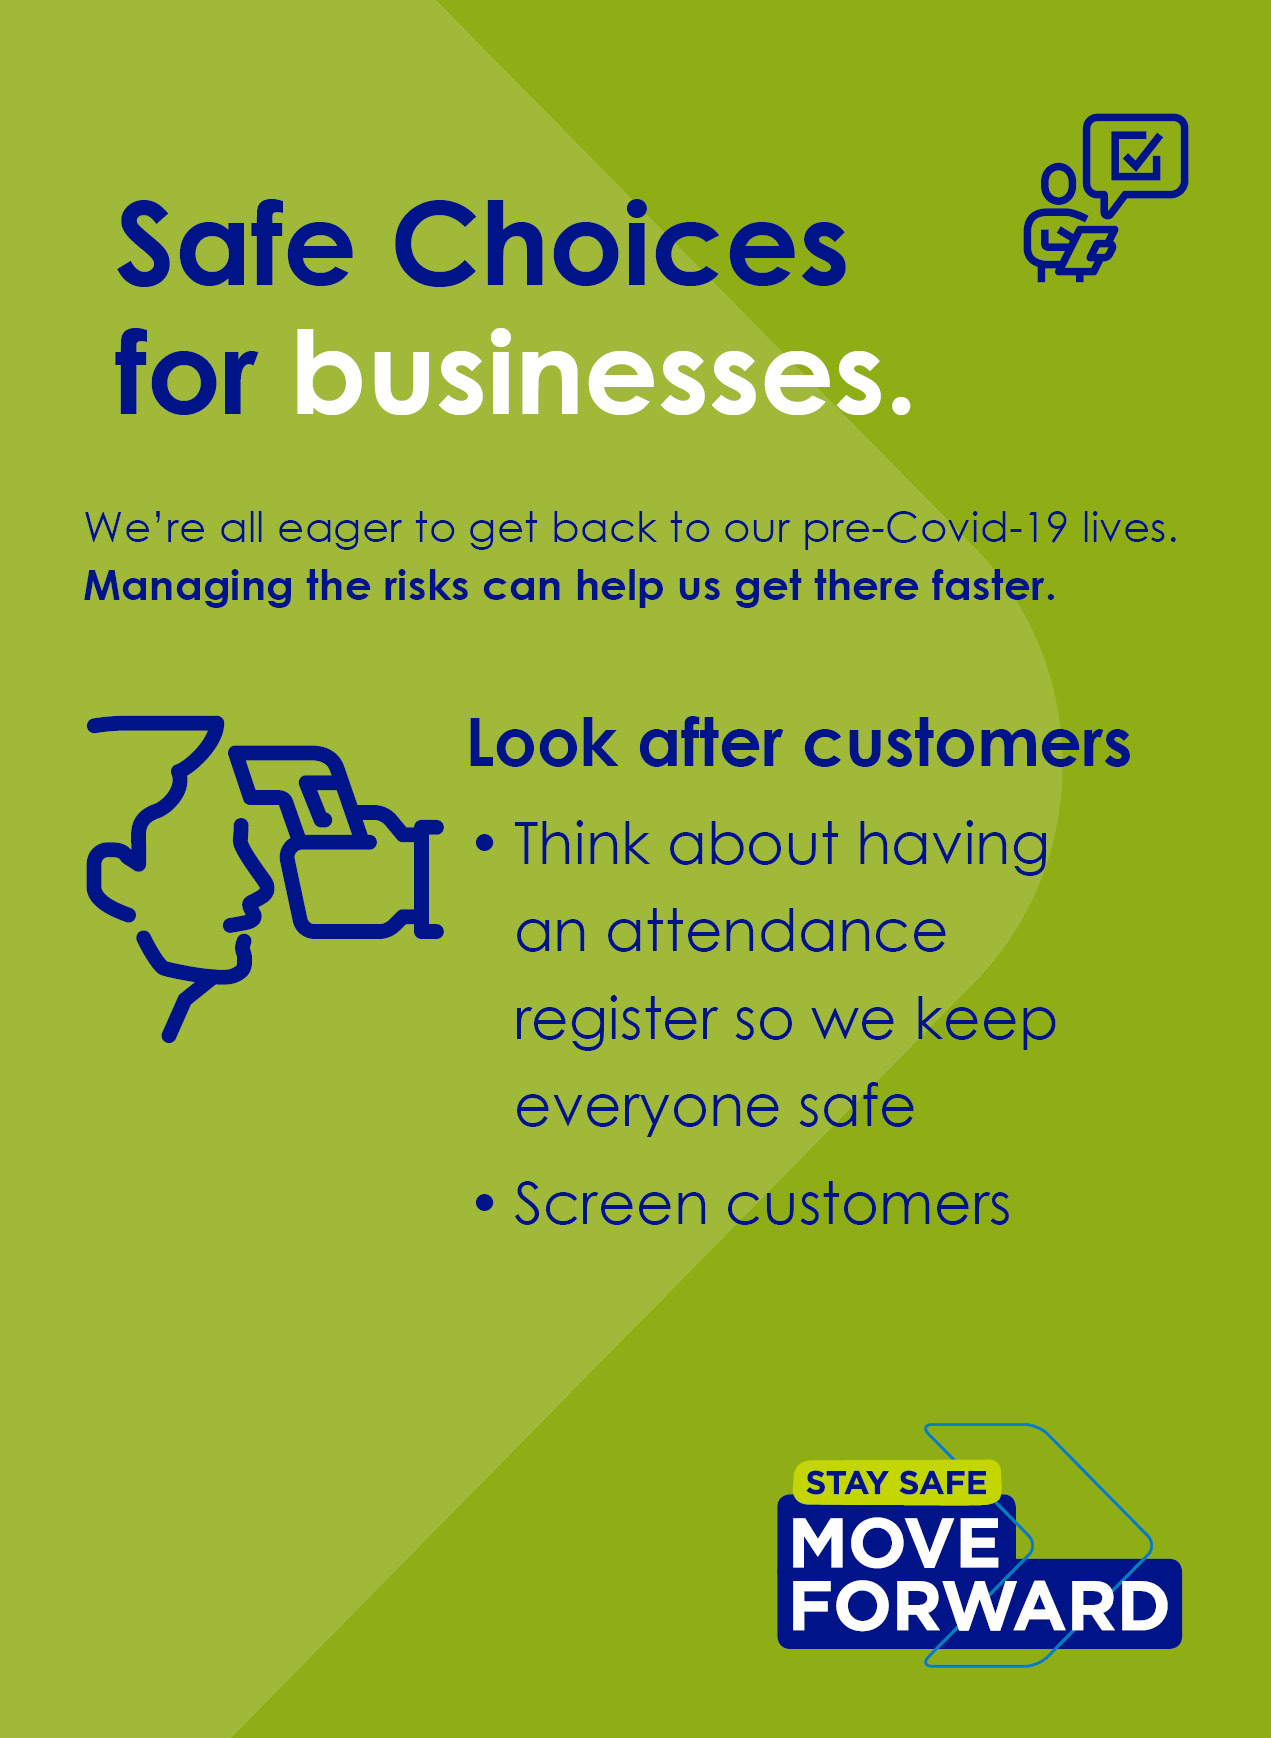 Look after Customers